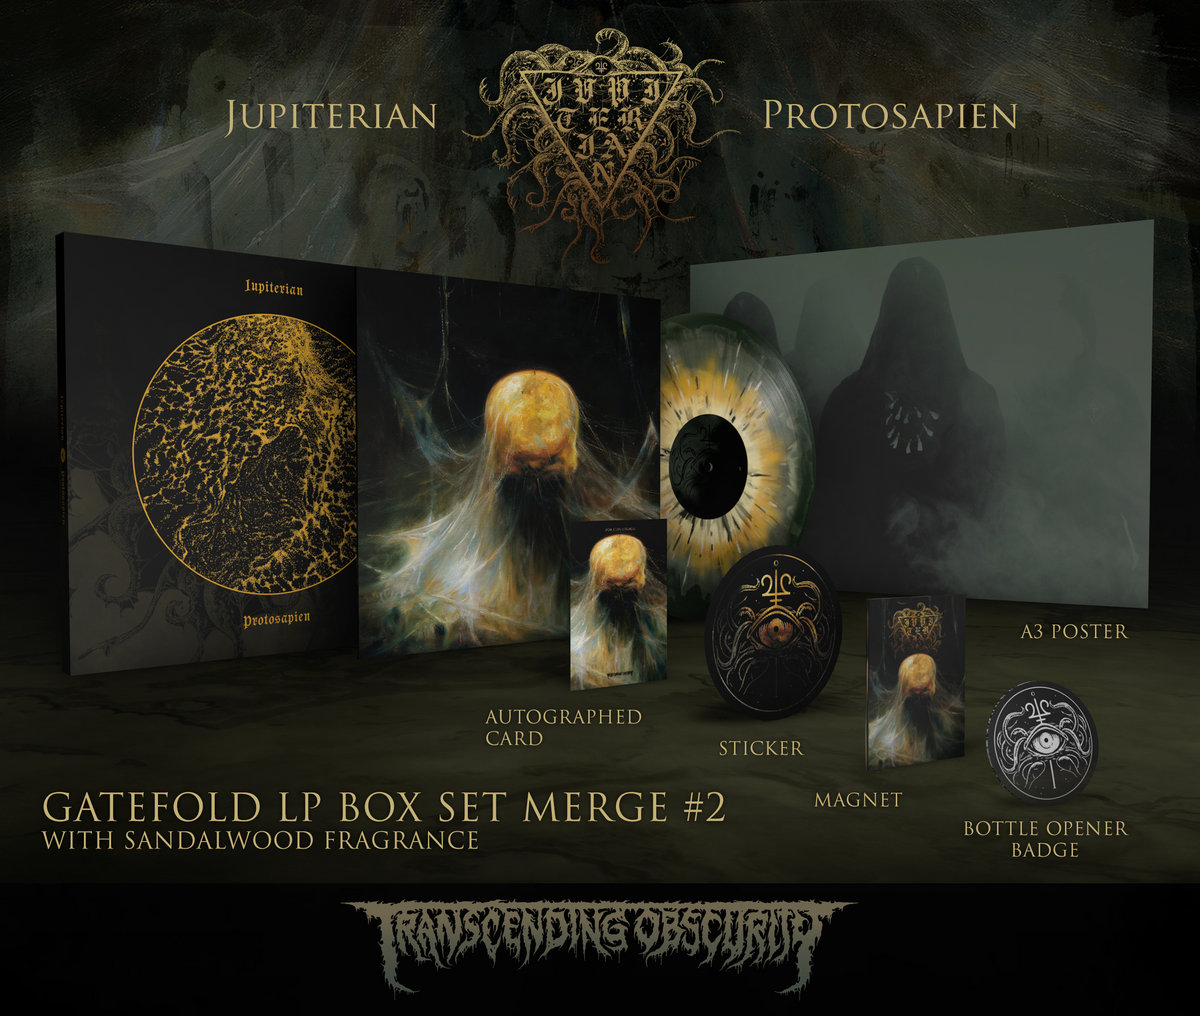 JUPITERIAN - Protosapien Autographed Gold LP Box Set (Limited to 25) Merge #2 Variant